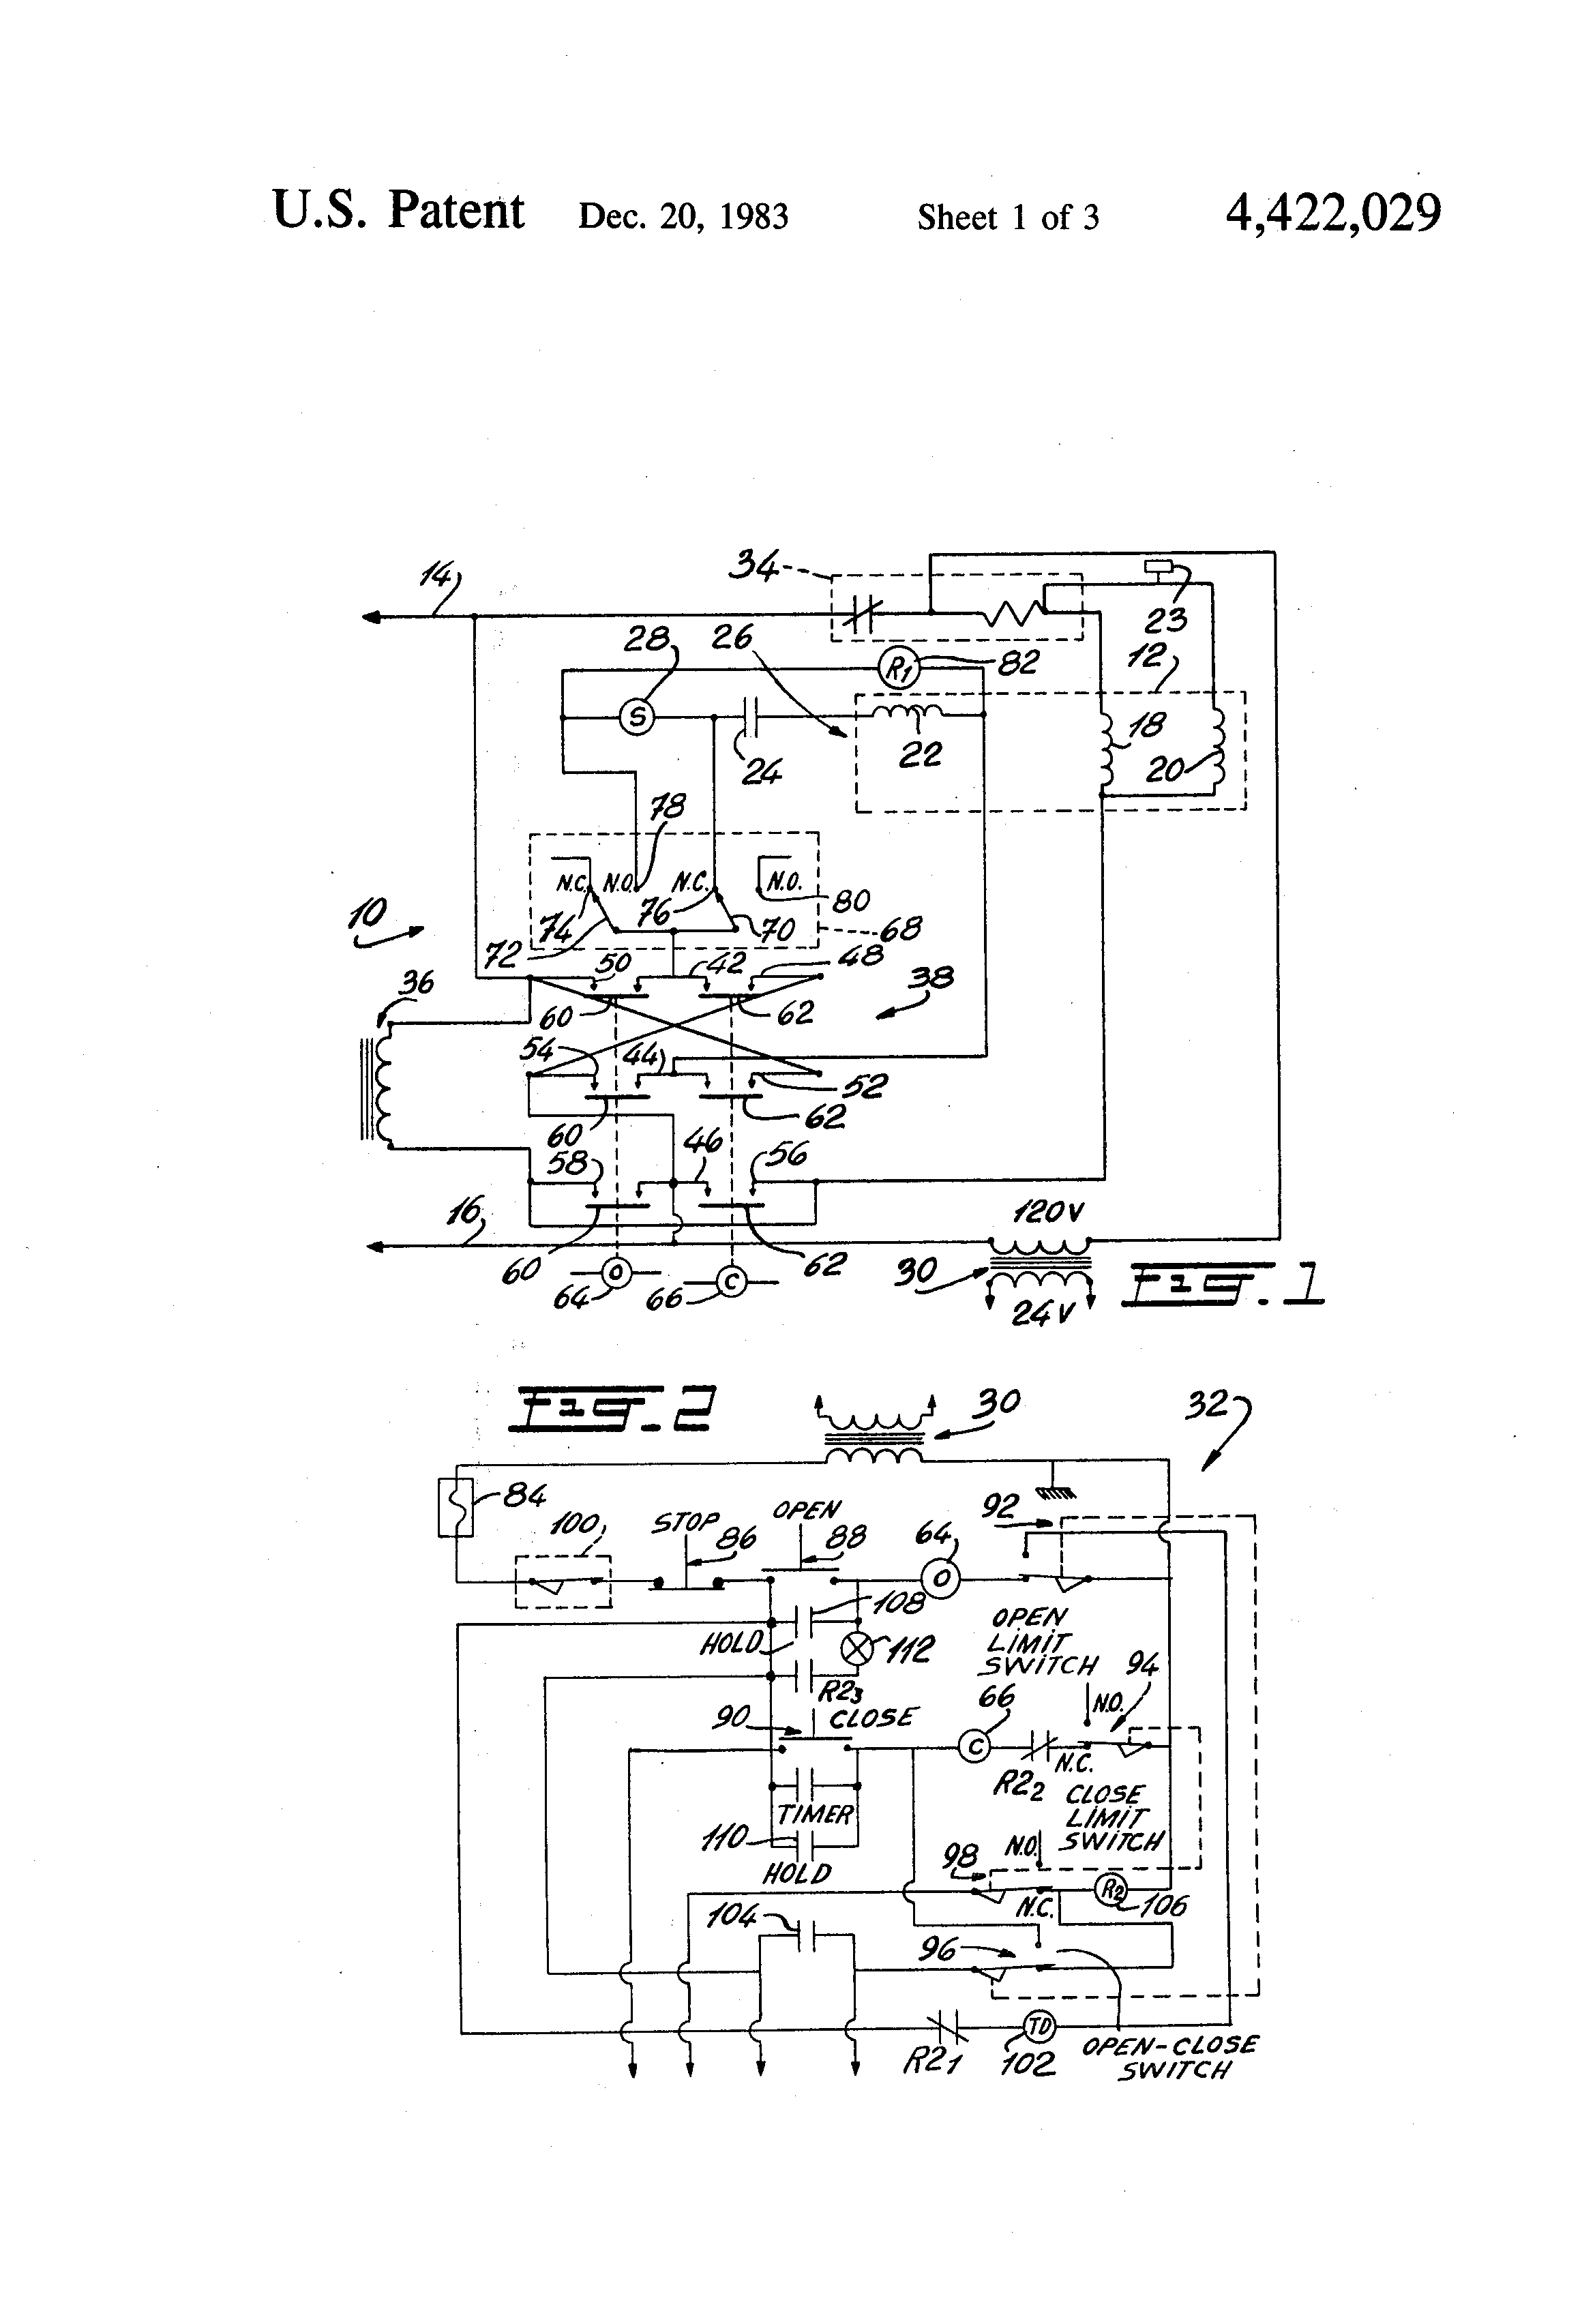 Patent US Instant Reverse Control Circuit For A Single - Motor control using relay circuit diagram